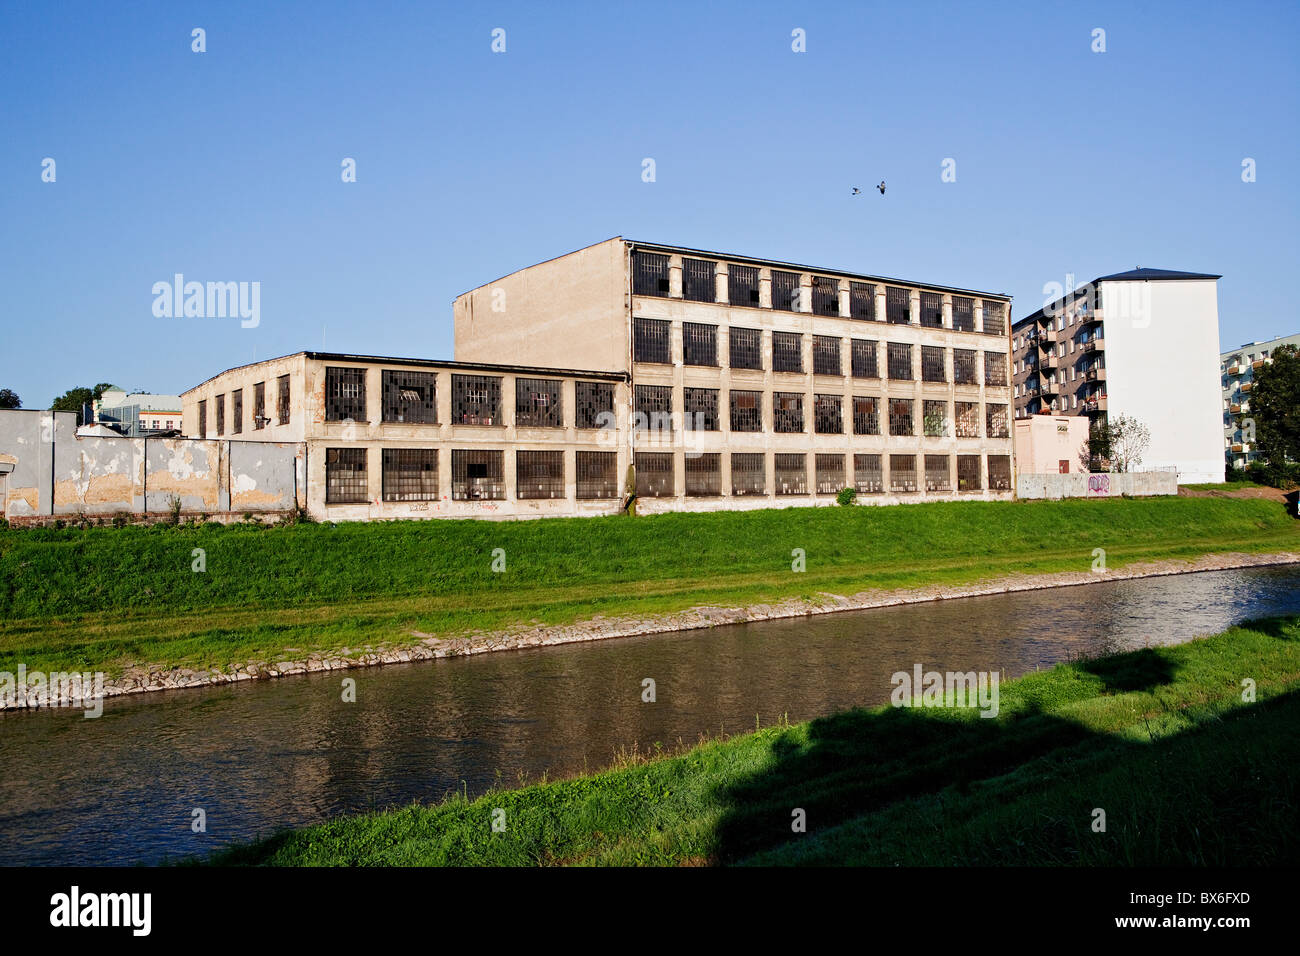 Abandoned building of an old factory Karnola on Zamecky okruh in Opava. (CTK Photo/Josef Horazny) - Stock Image